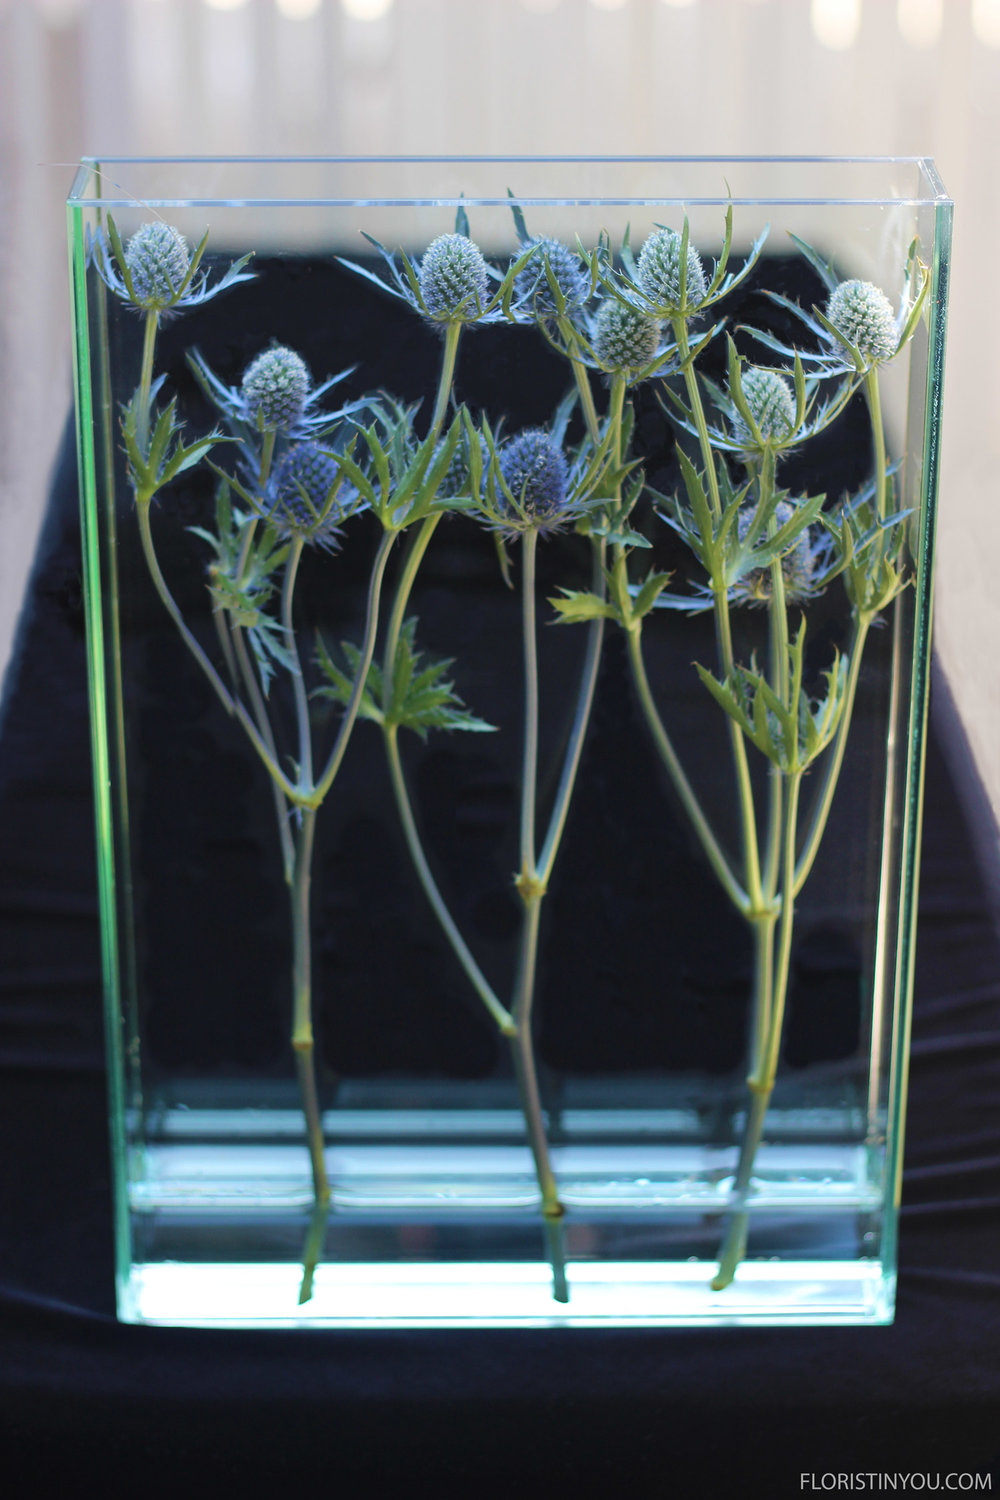 Place your Sea Holly in the vase.